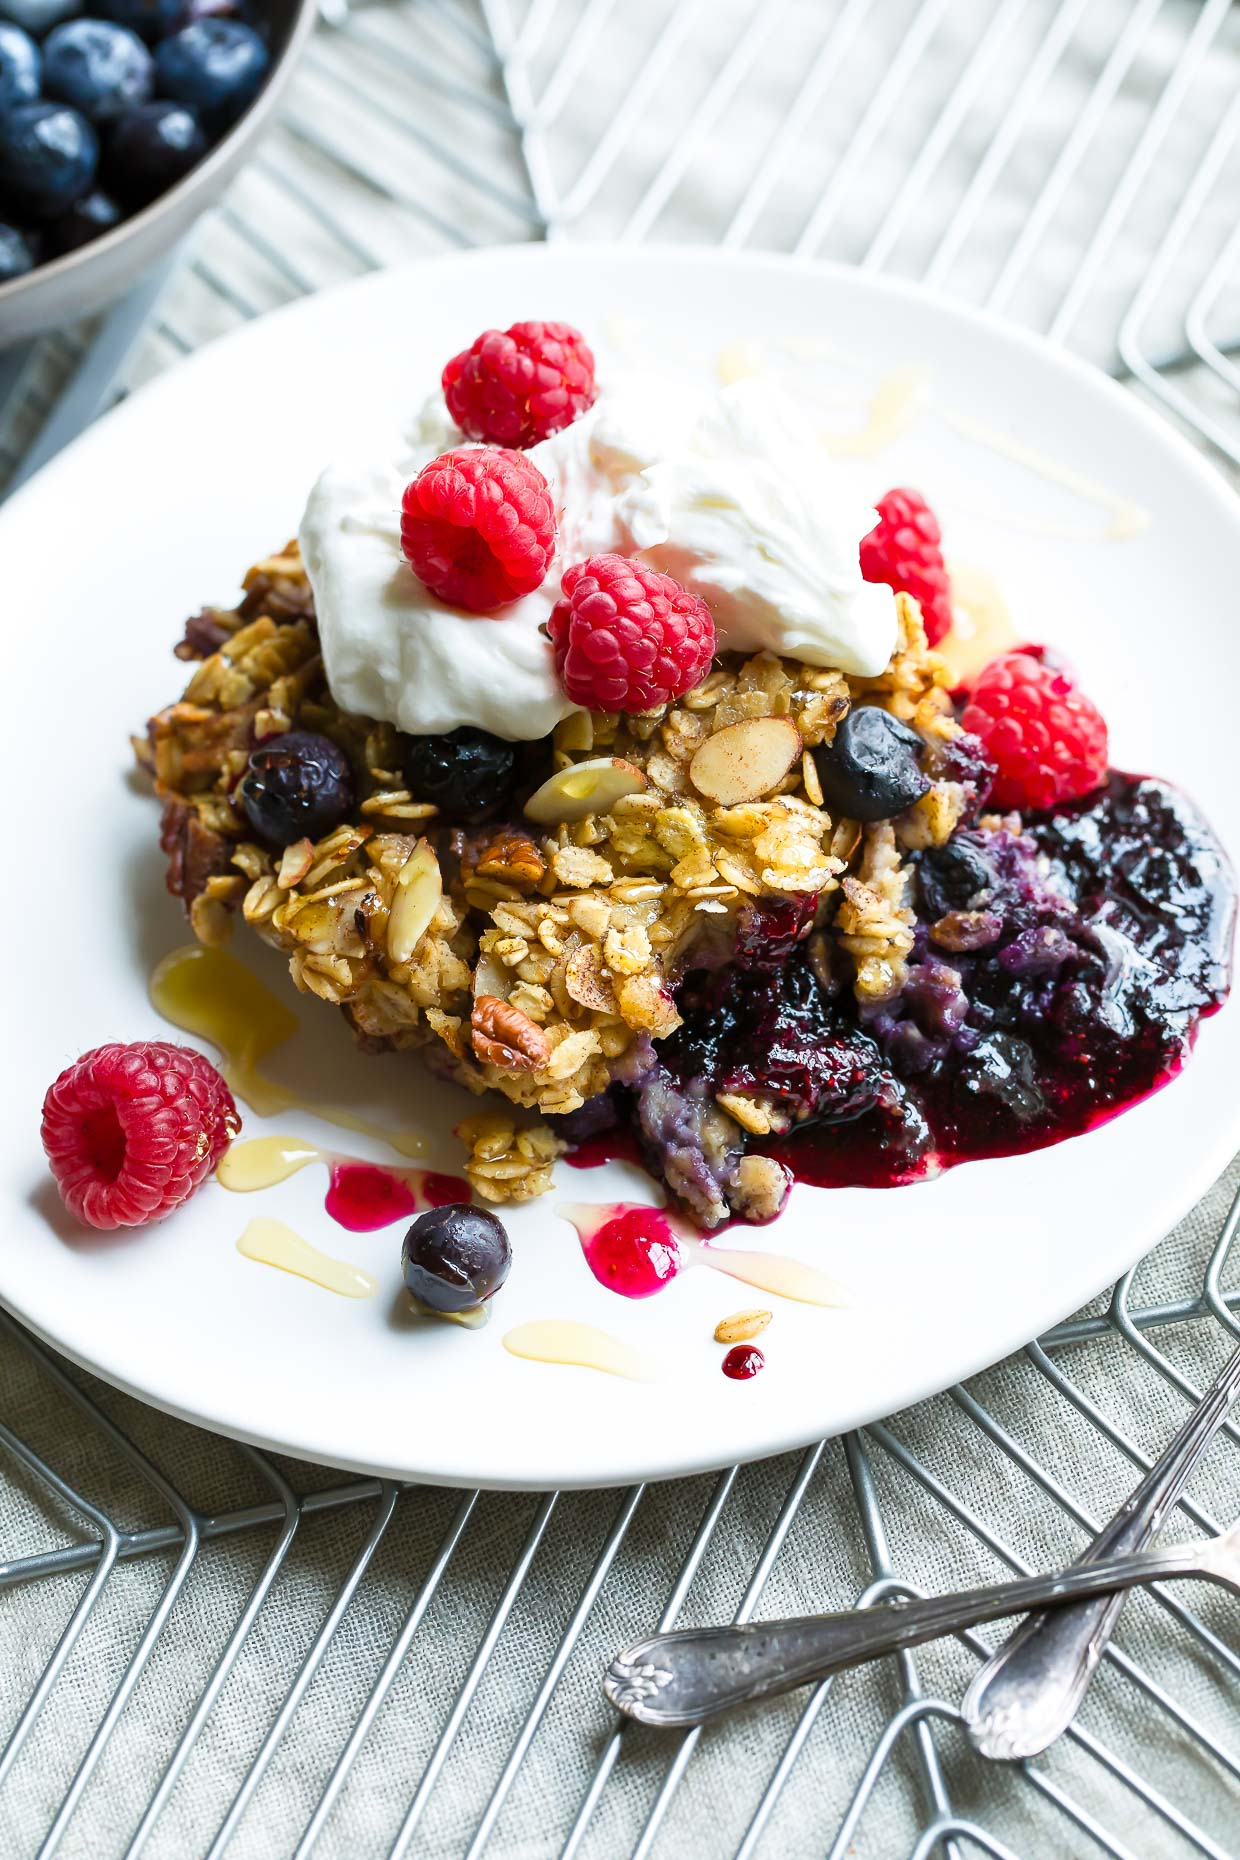 Blueberry Baked Oatmeal with Whipped Cream and Berries